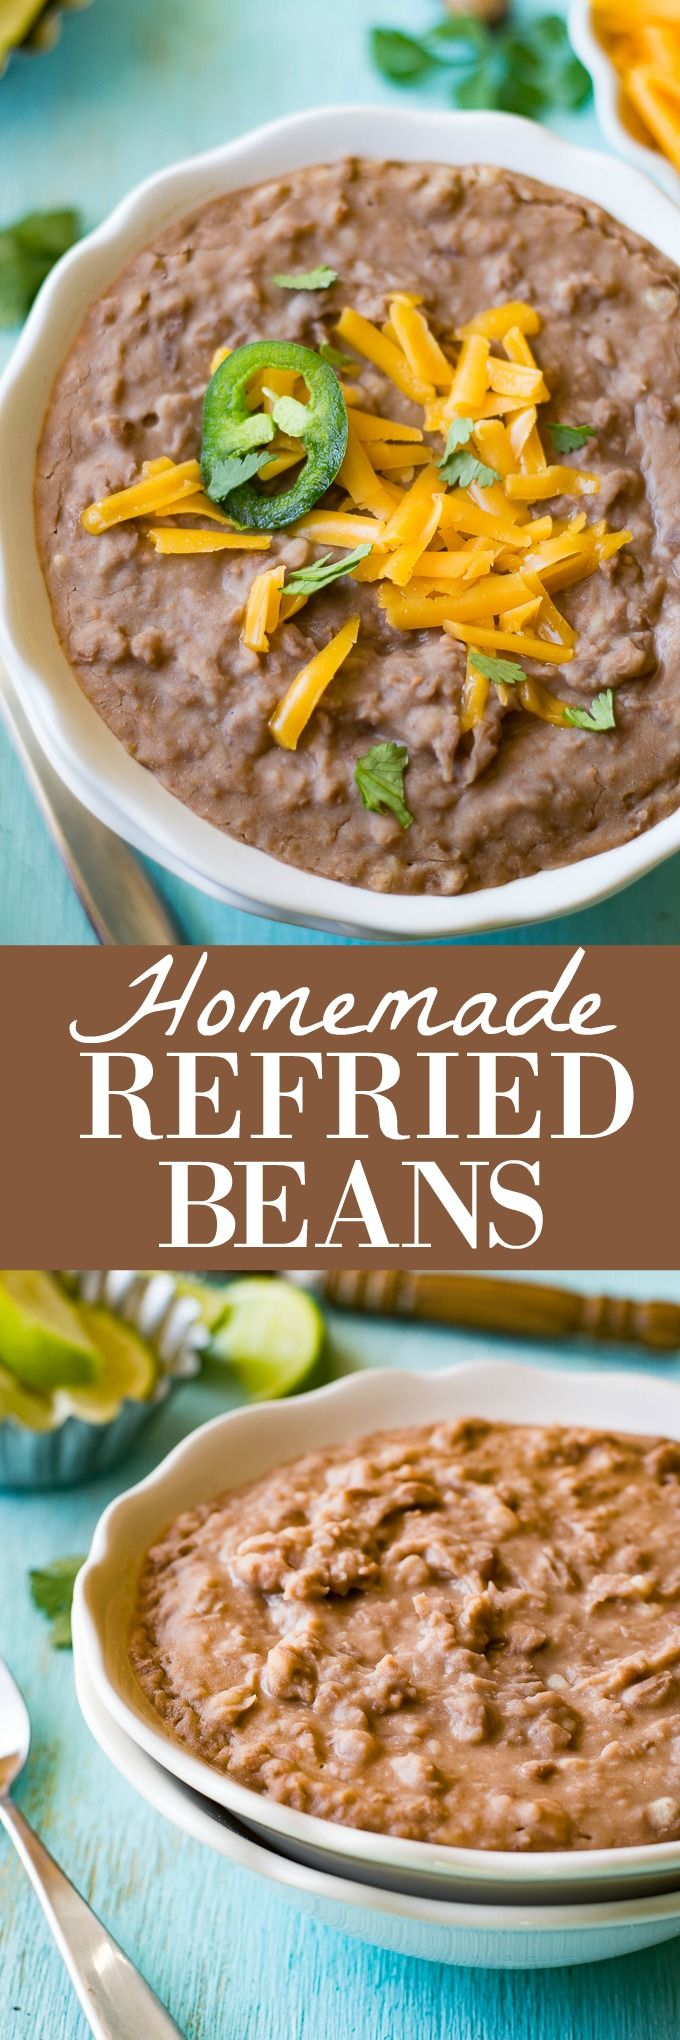 Homemade Refried Beans! Quick and easy! Only 2 ingredients. These are the perfect side dish to any mexican meal, or any meal. I'm so excited to share today's recipe with you! Homemade Refried Beans. These are so easy and so so flavorful. You will never want to eat the canned beans again! And I...Read More »: